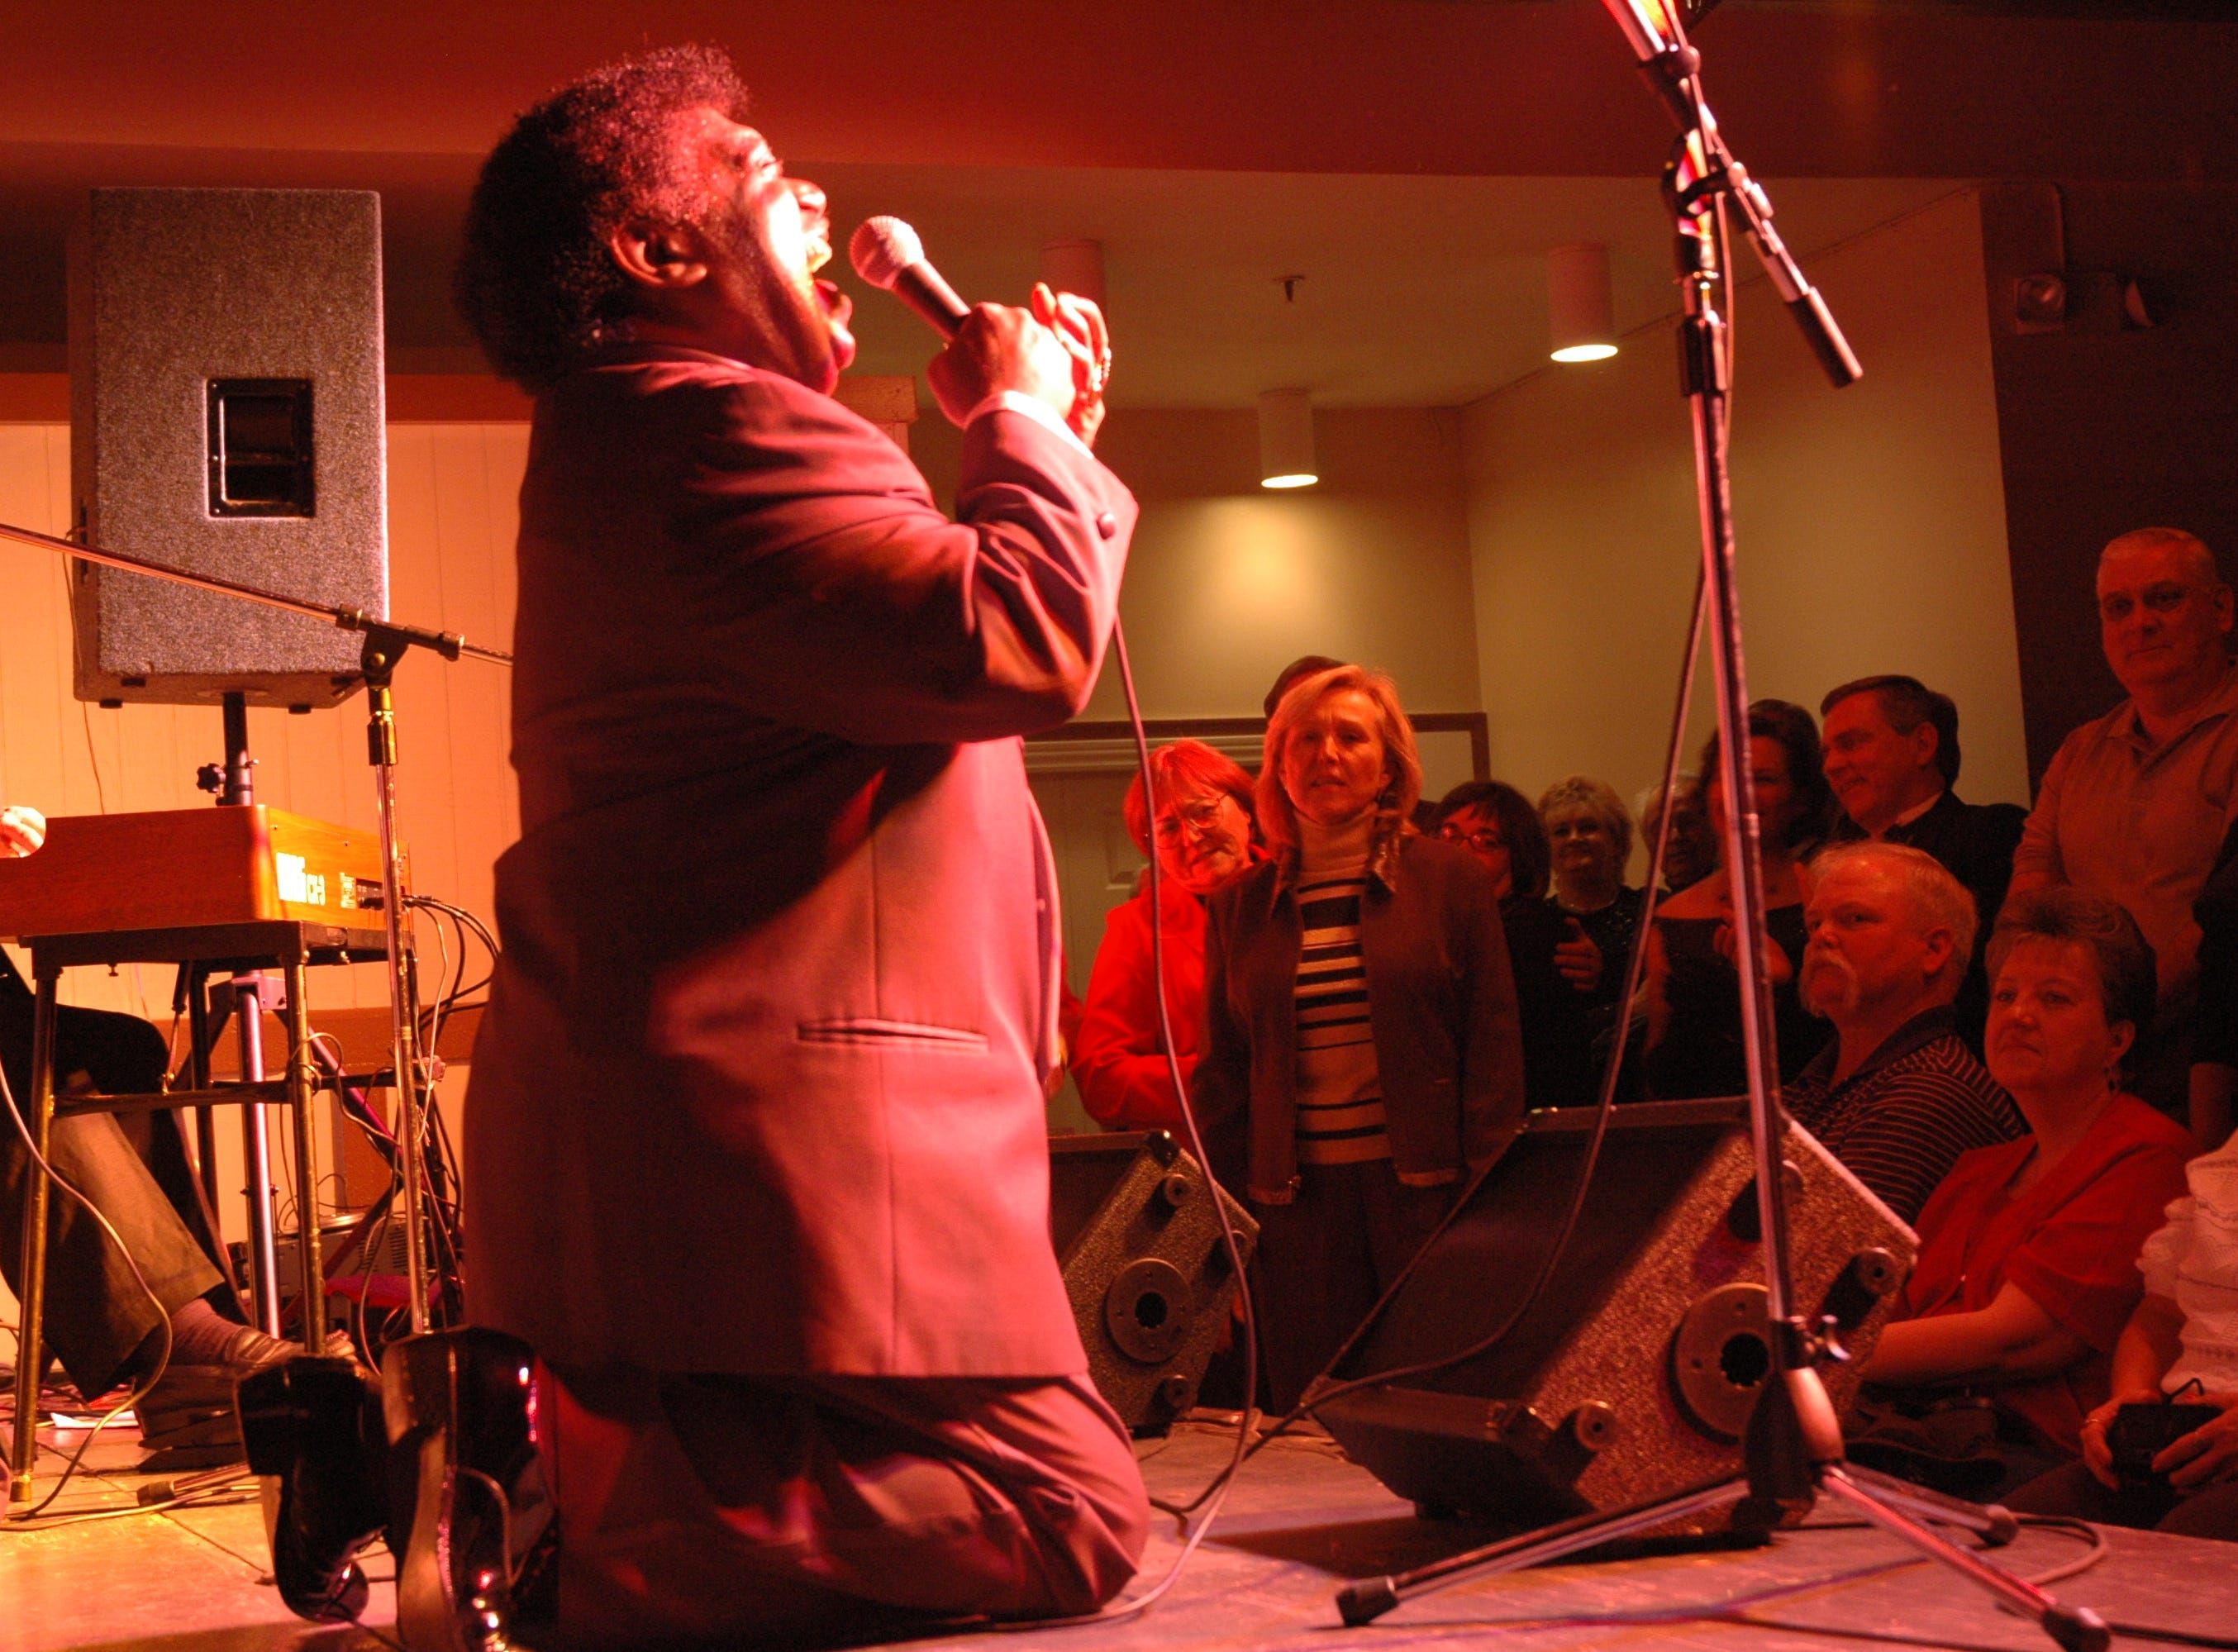 Down on his knees, rock and roll legend Percy Sledge sings with feeling and soul during a New Year's Eve party at Carson's Corner in Halls. Sledge performed two shows on Dec. 31.